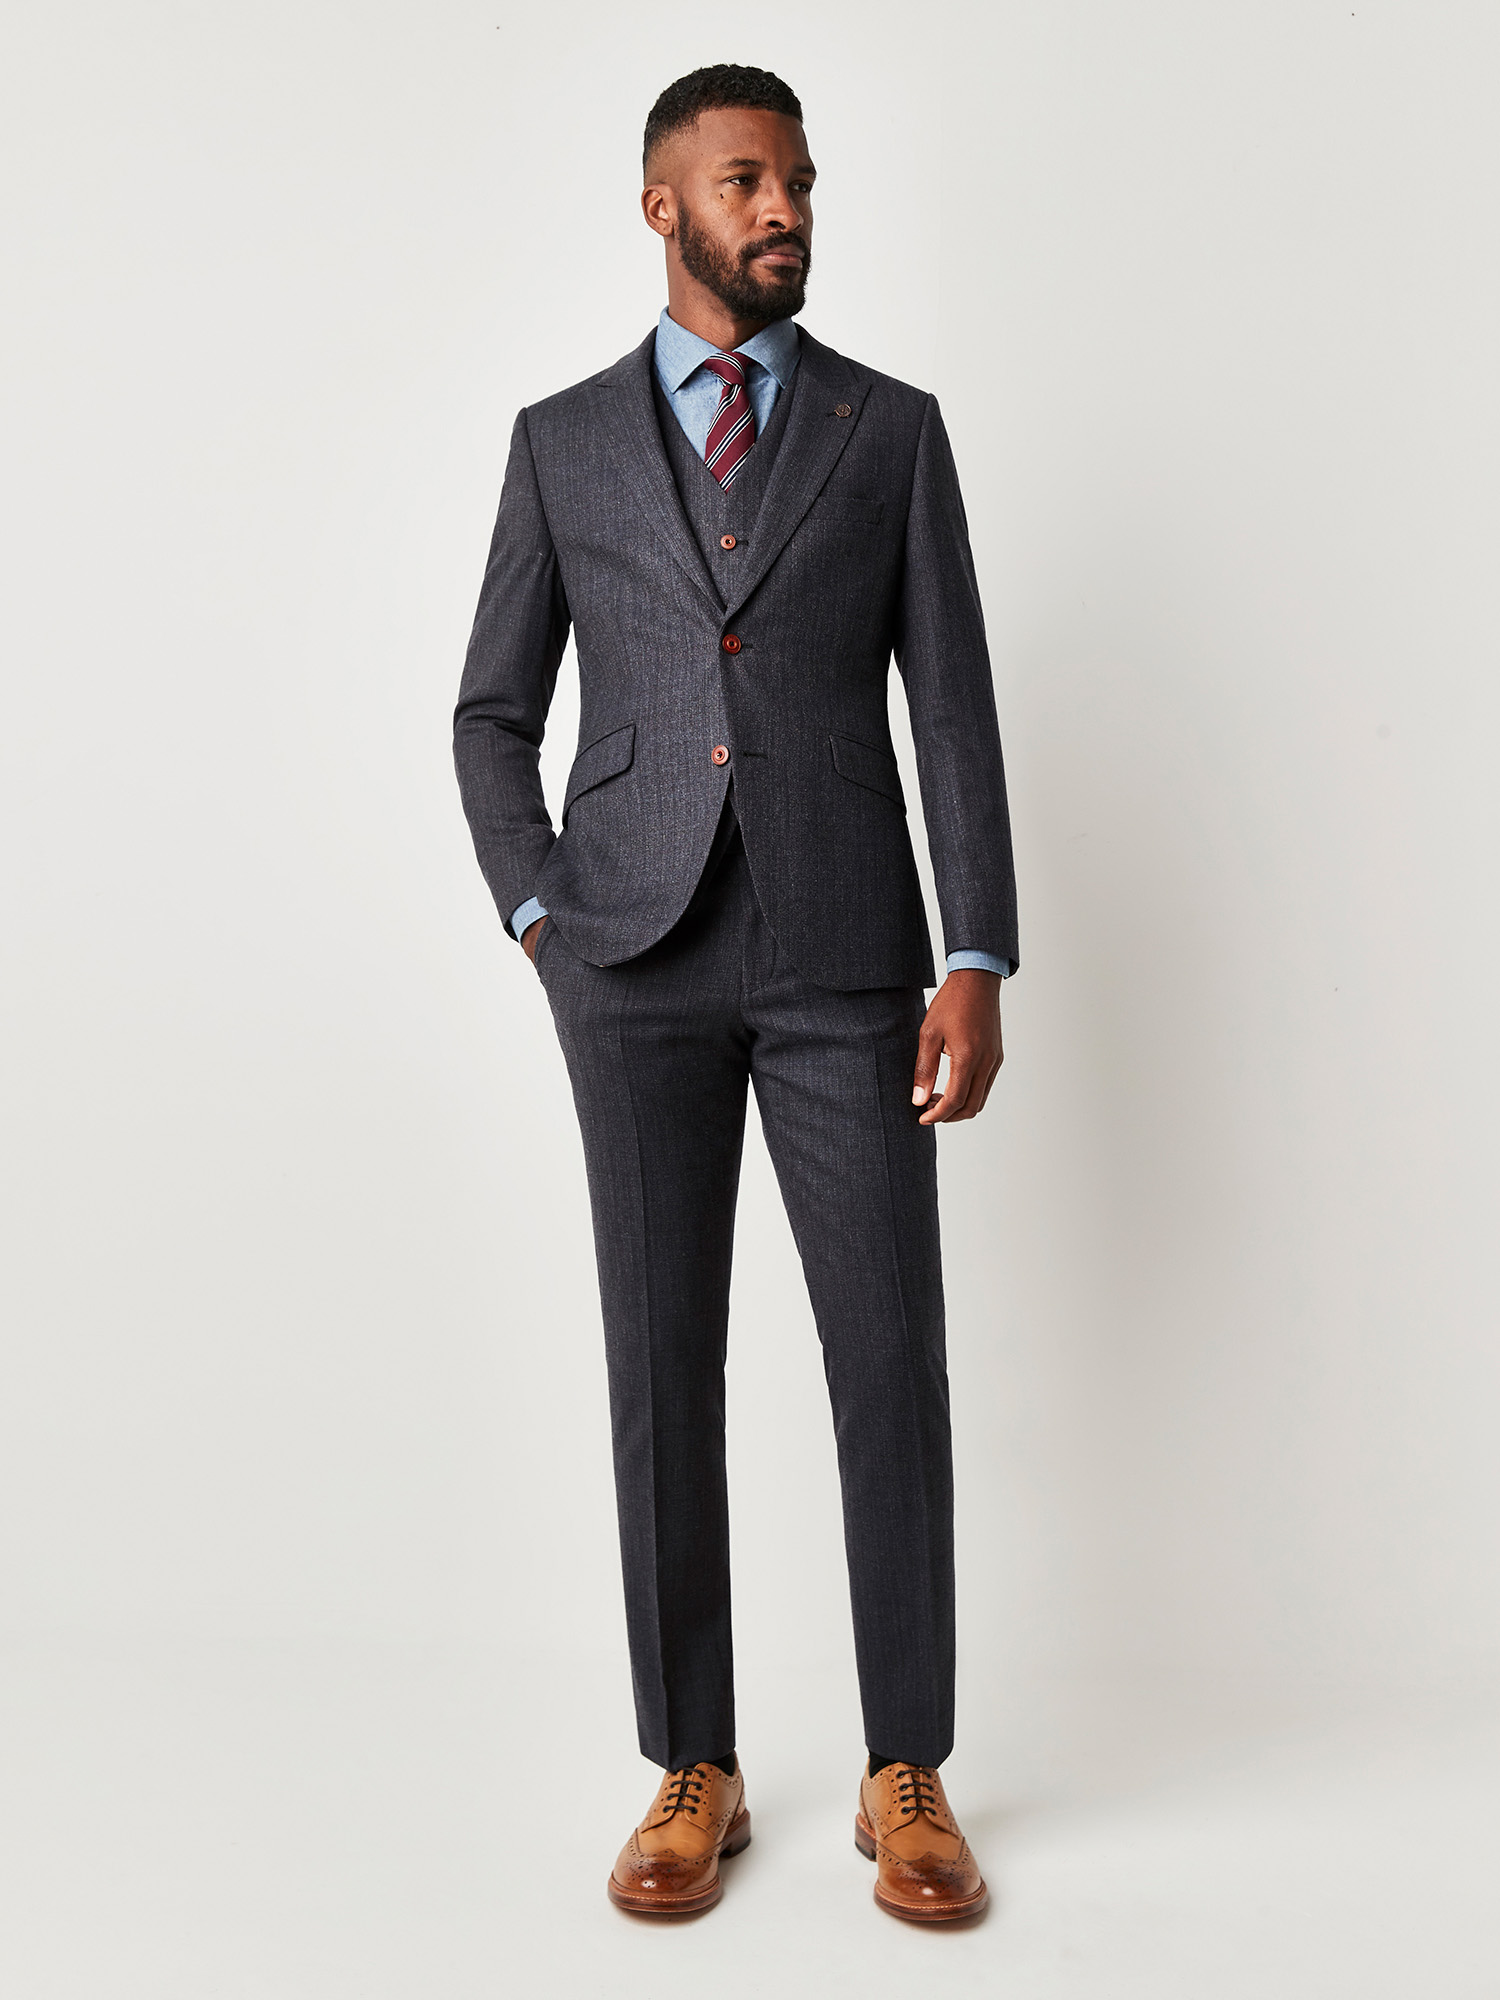 Charcoal Textured 3 Piece Suit